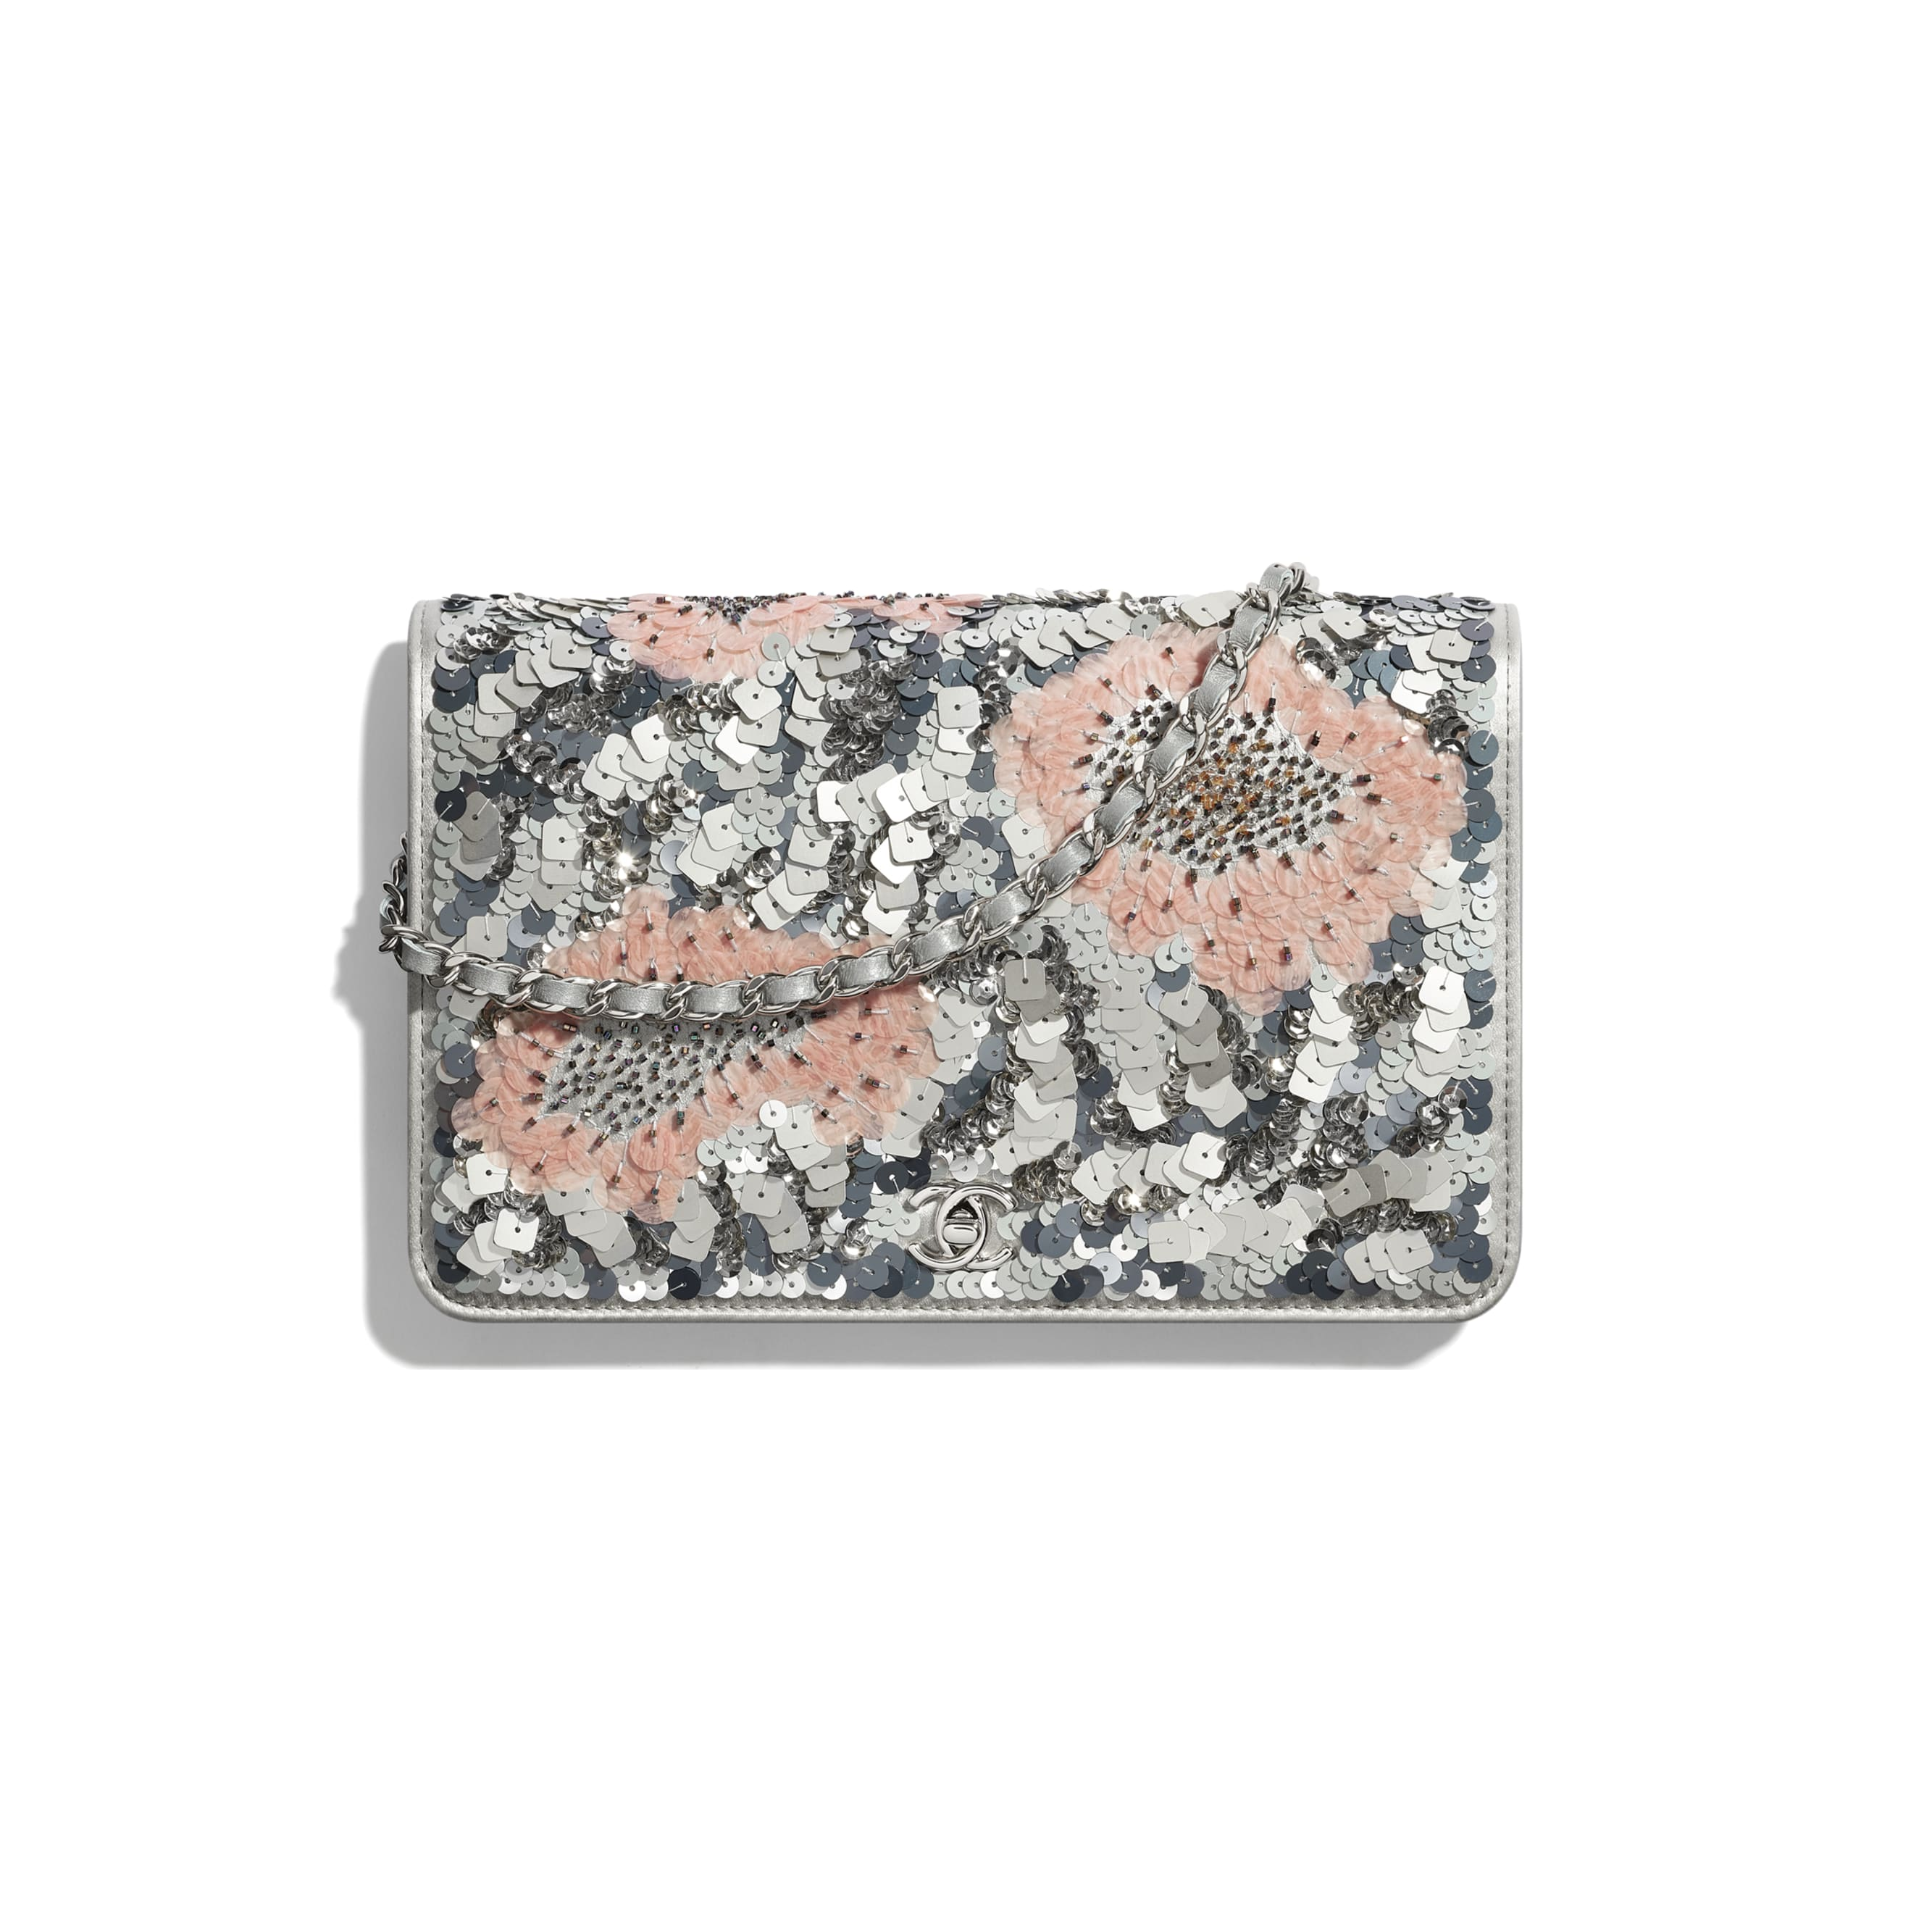 Wallet On Chain - Grey, Silver & Pink - Sequins, Glass Pearls & Silver-Tone Metal - CHANEL - Default view - see standard sized version